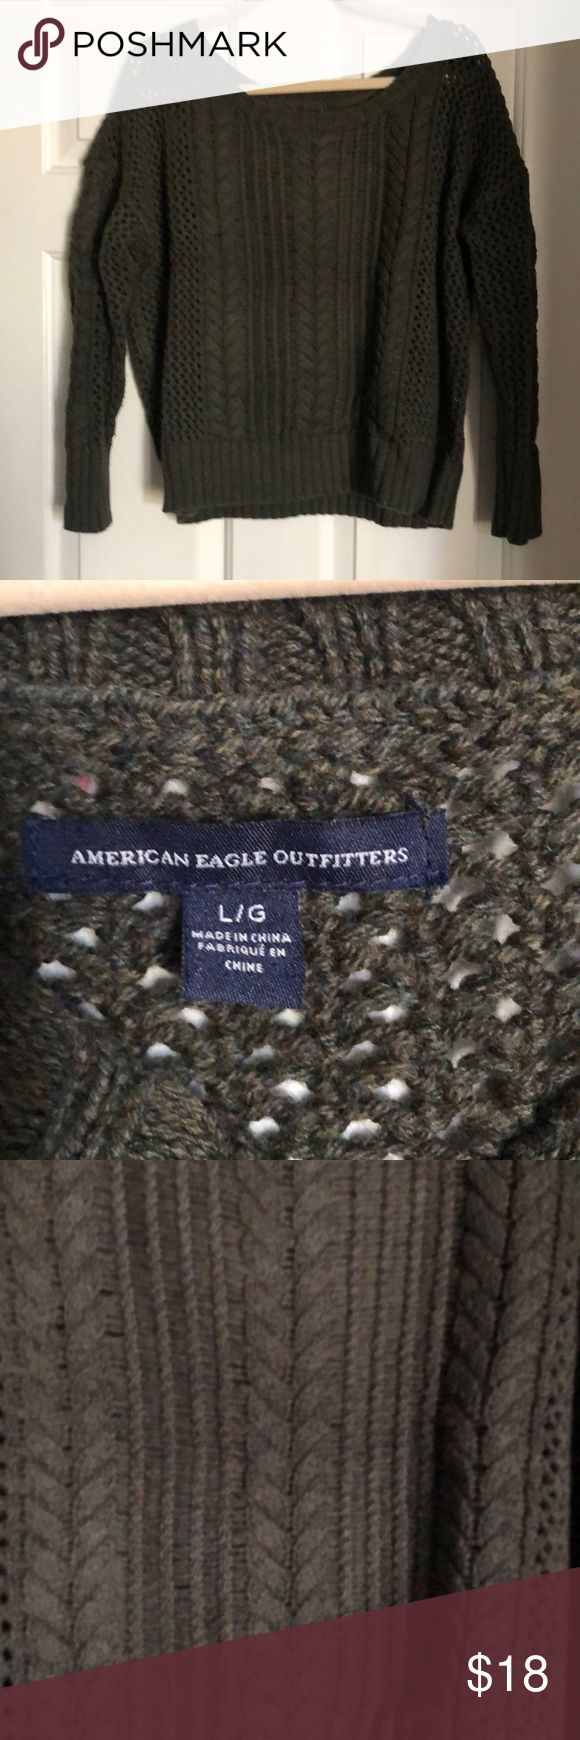 Olive green sweater Gently worn olive green sweater, scoop neck, waist length American Eagle Outfitters Sweaters Crew & Scoop Necks